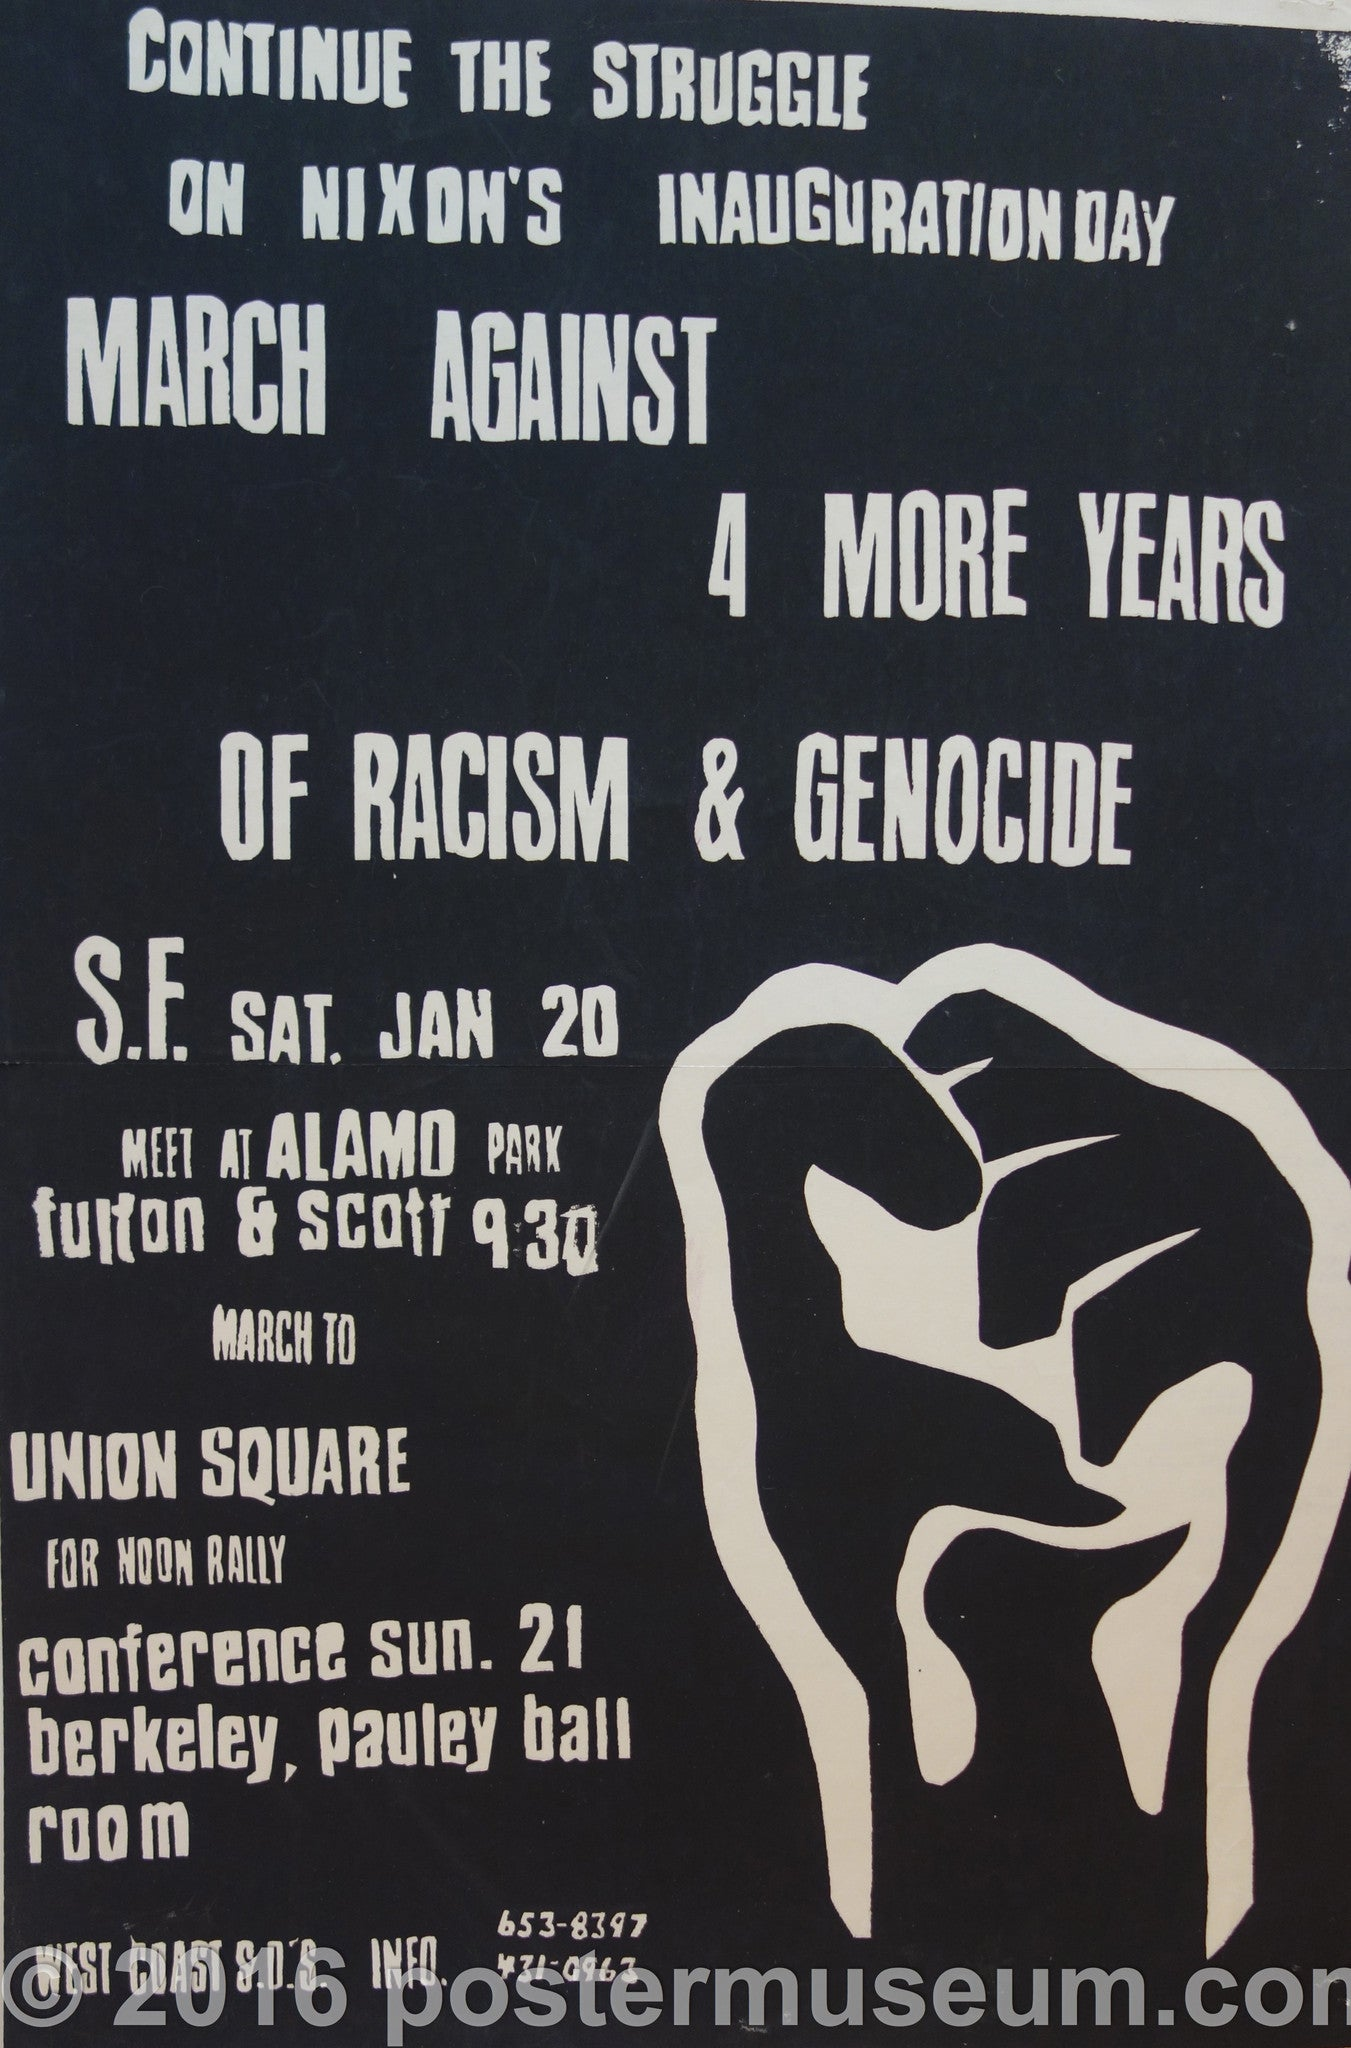 March Against Racism & Genocide